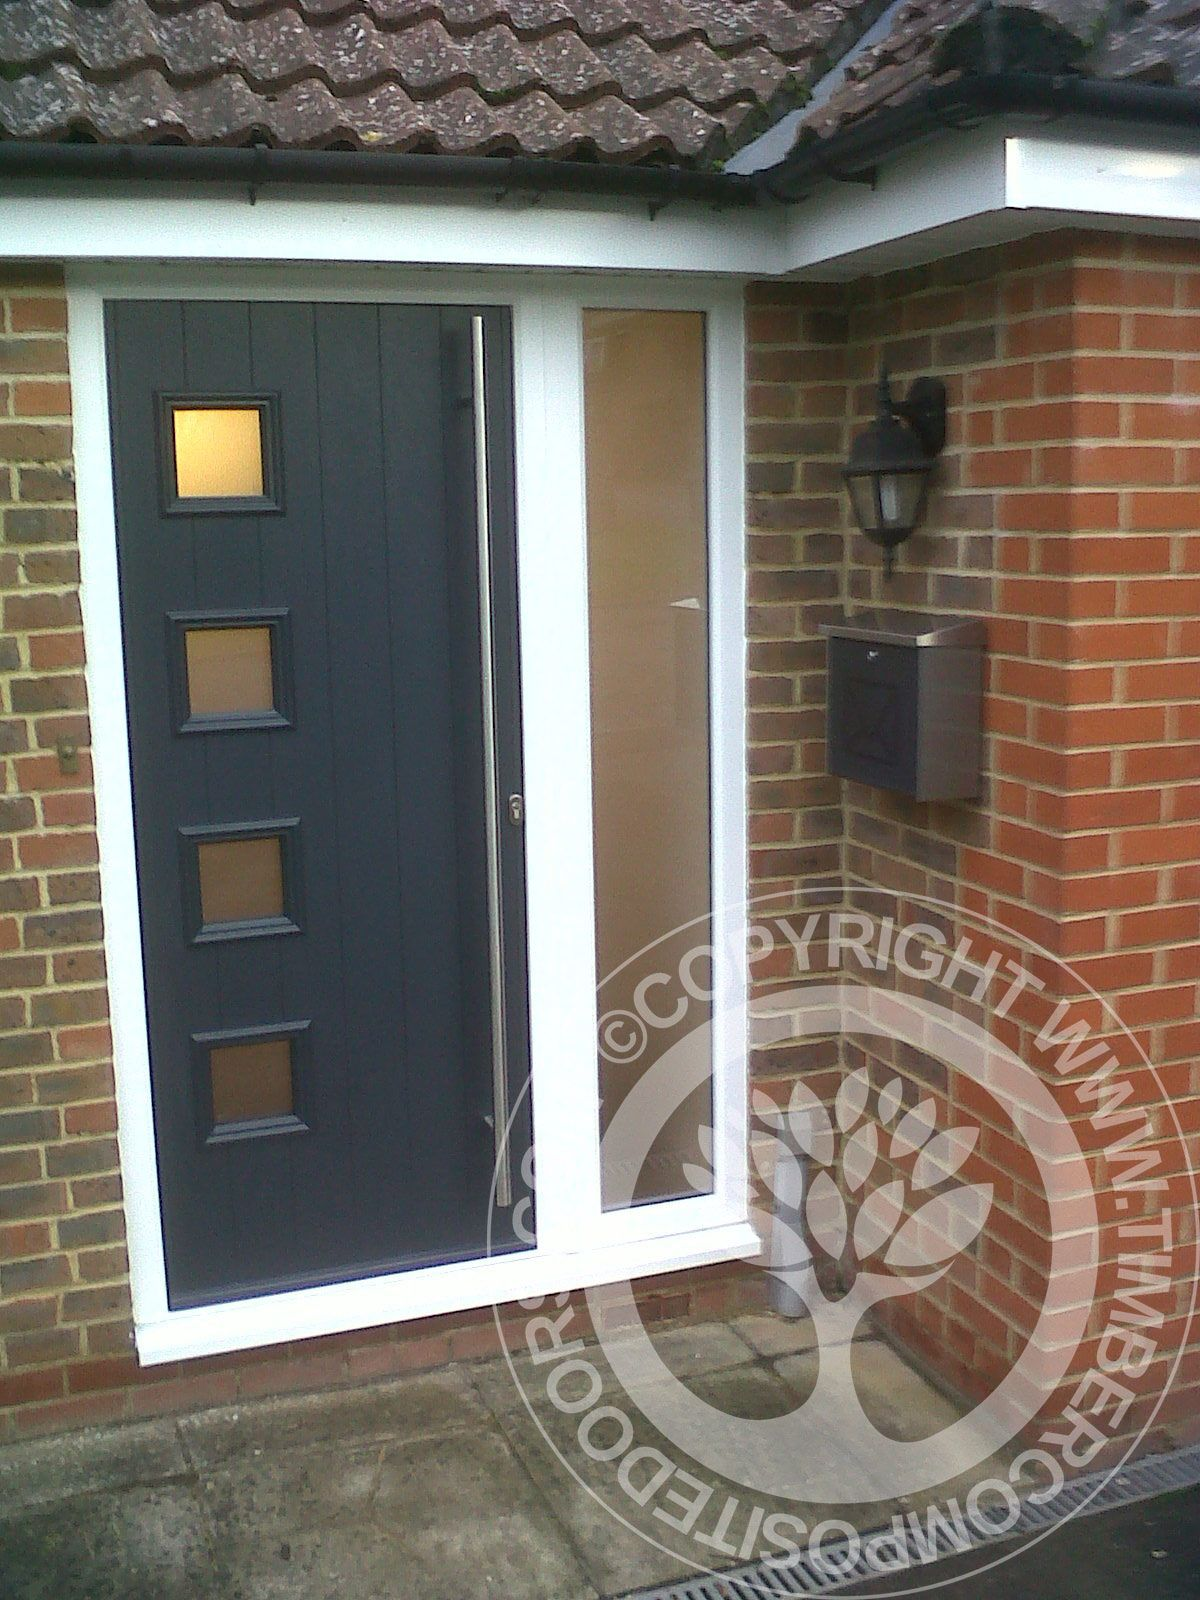 Solidor Milano Italia Collection Composite Door in Anthracite Grey : Our Door of the Day & Solidor Milano Italia Collection Composite Door in Anthracite Grey ... Pezcame.Com